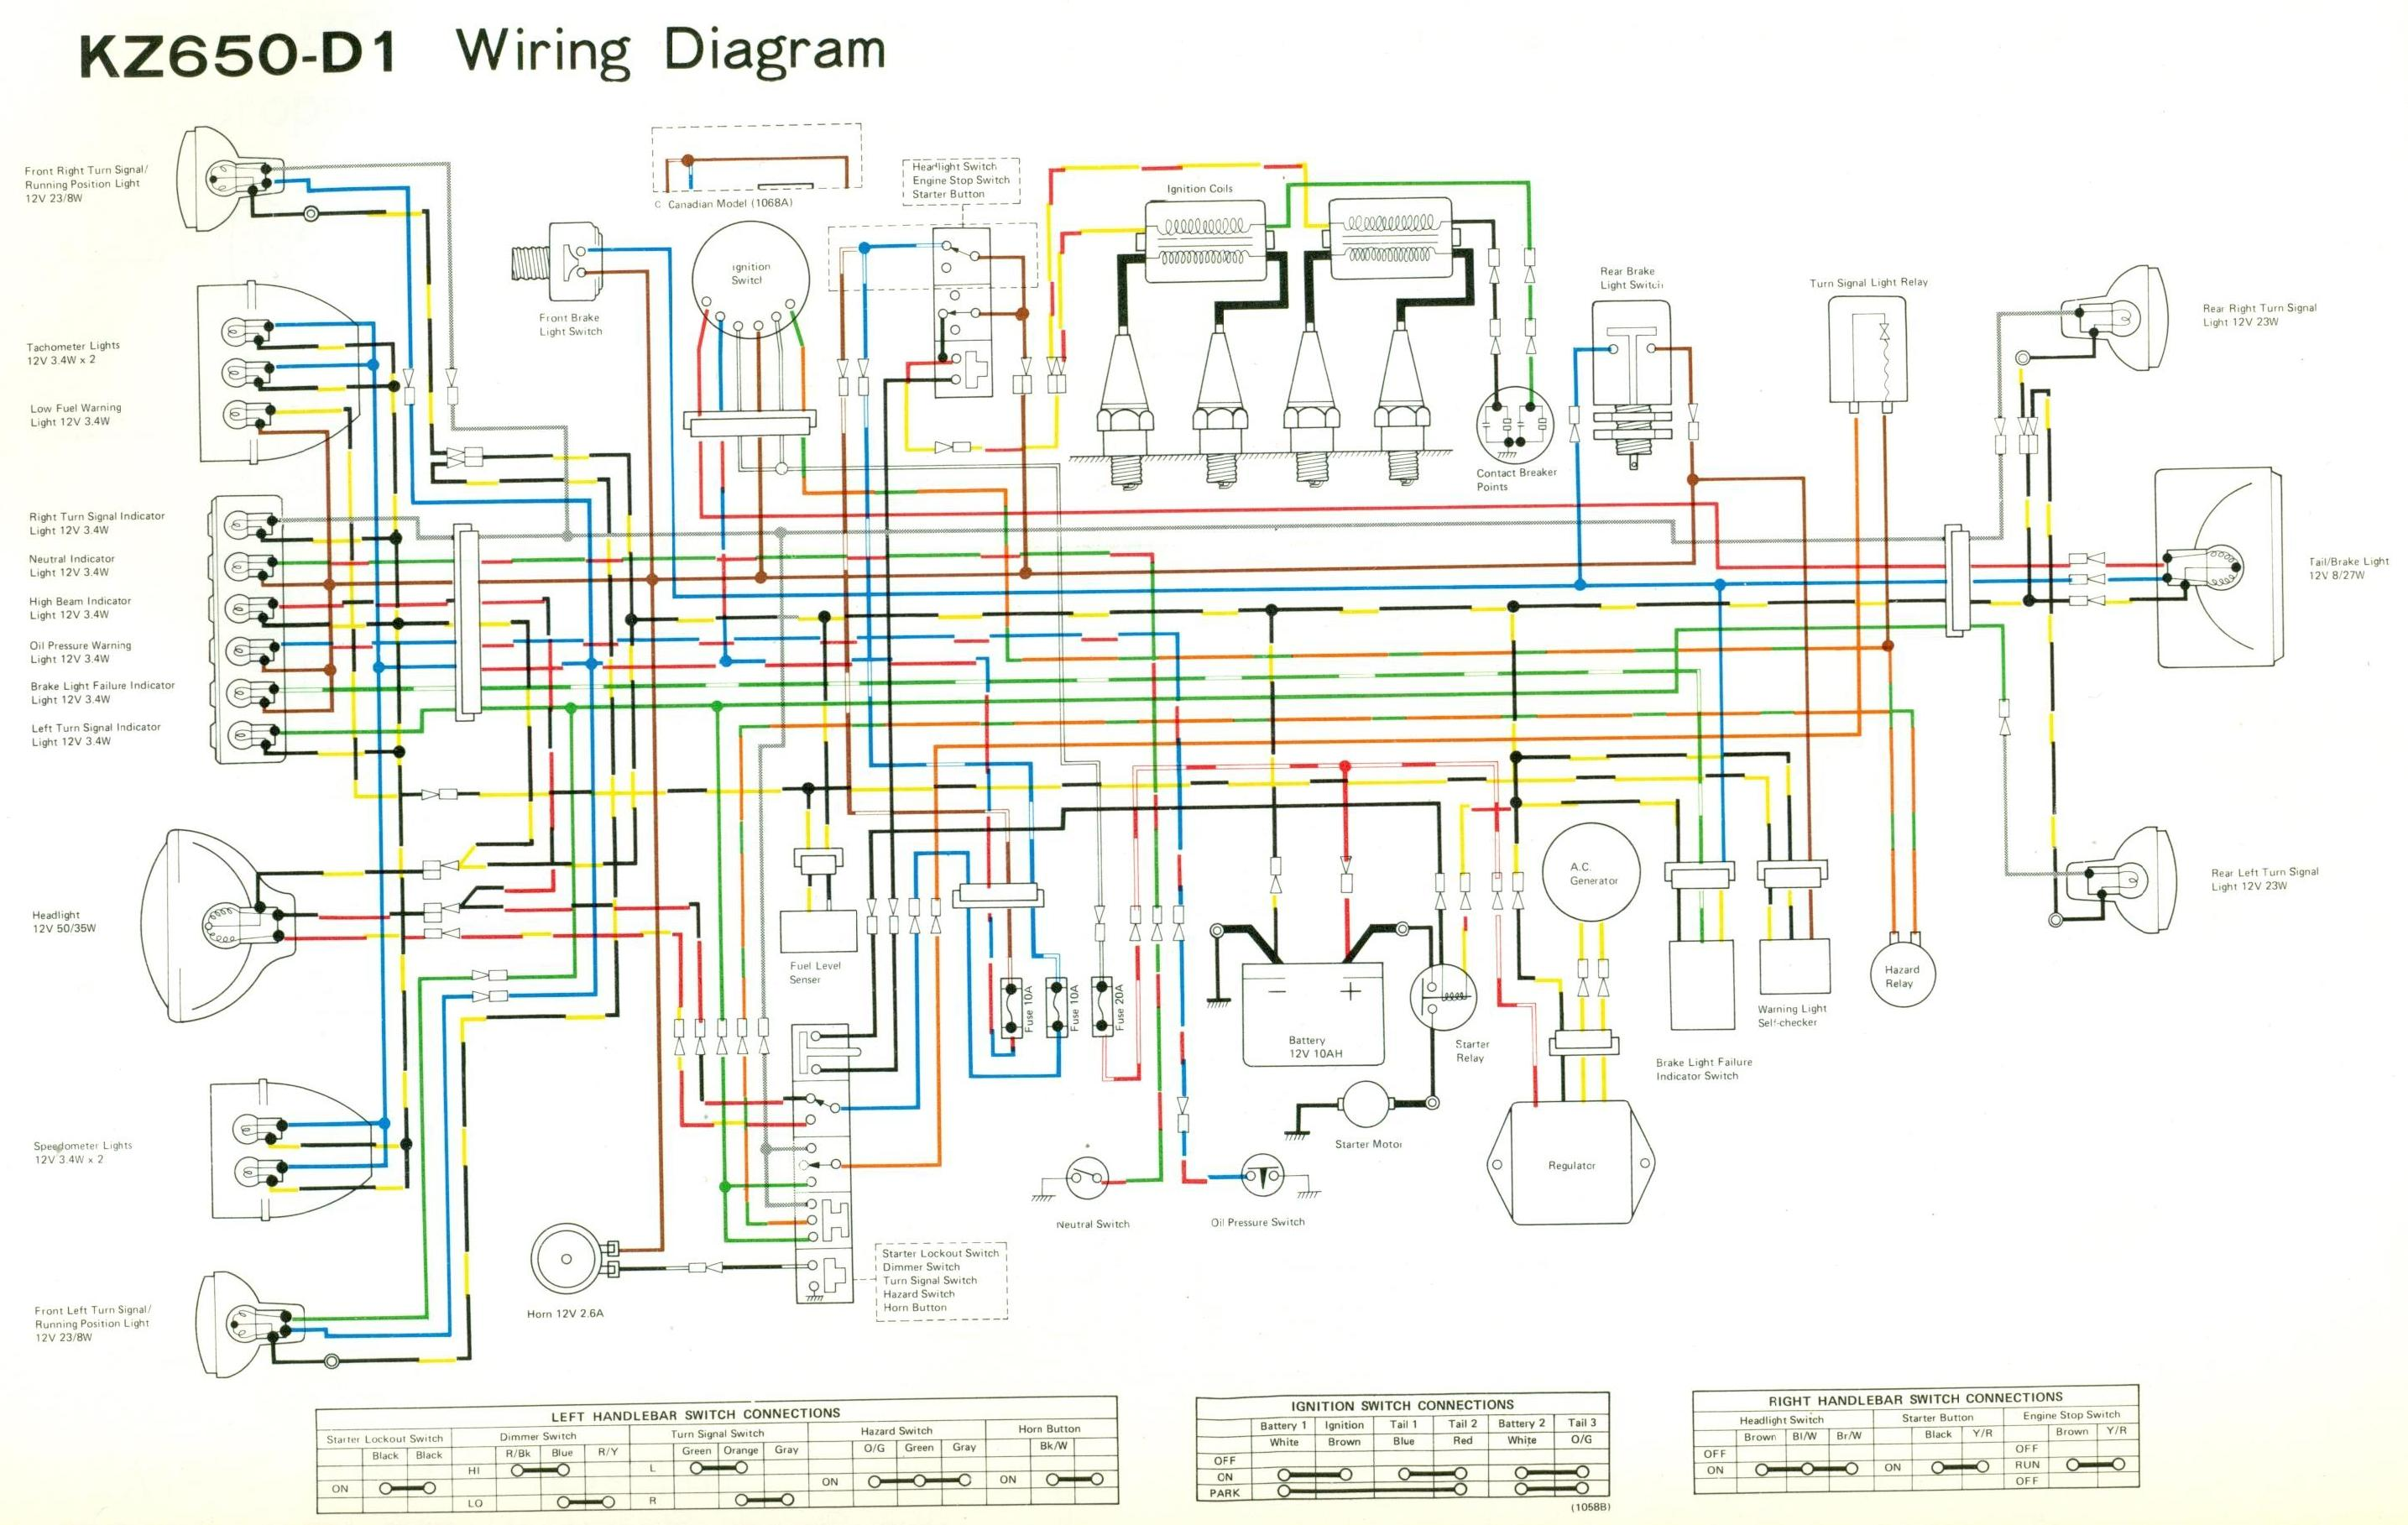 KZ650 D wiring diagrams 1984 honda nighthawk 650 wiring diagram at bayanpartner.co